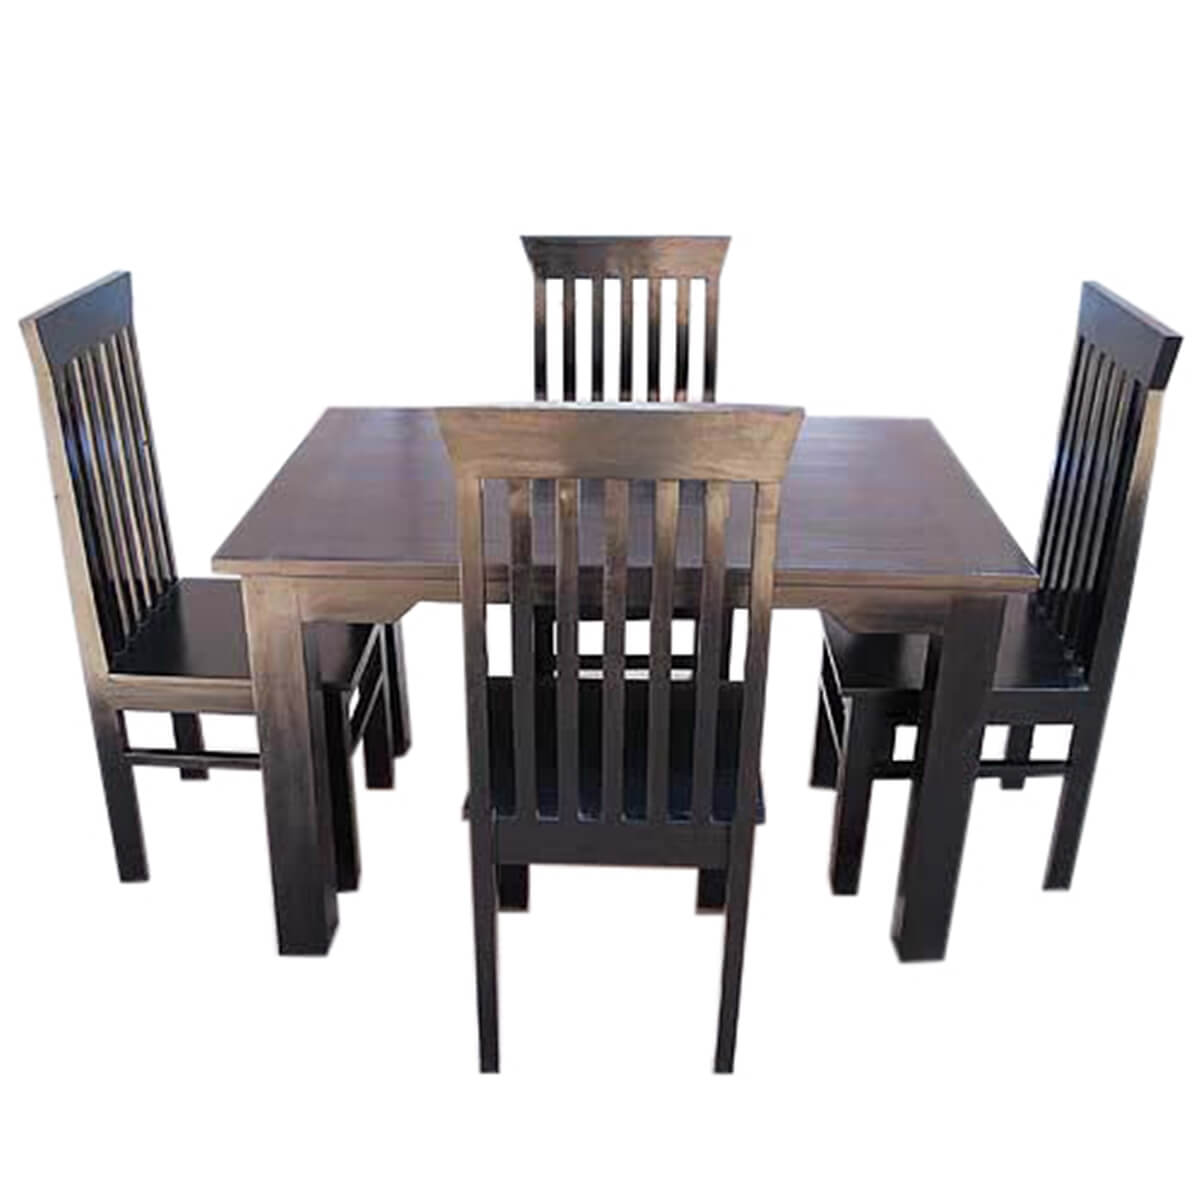 Contemporary lincoln kitchen dining room table chairs set for Kitchen dining furniture